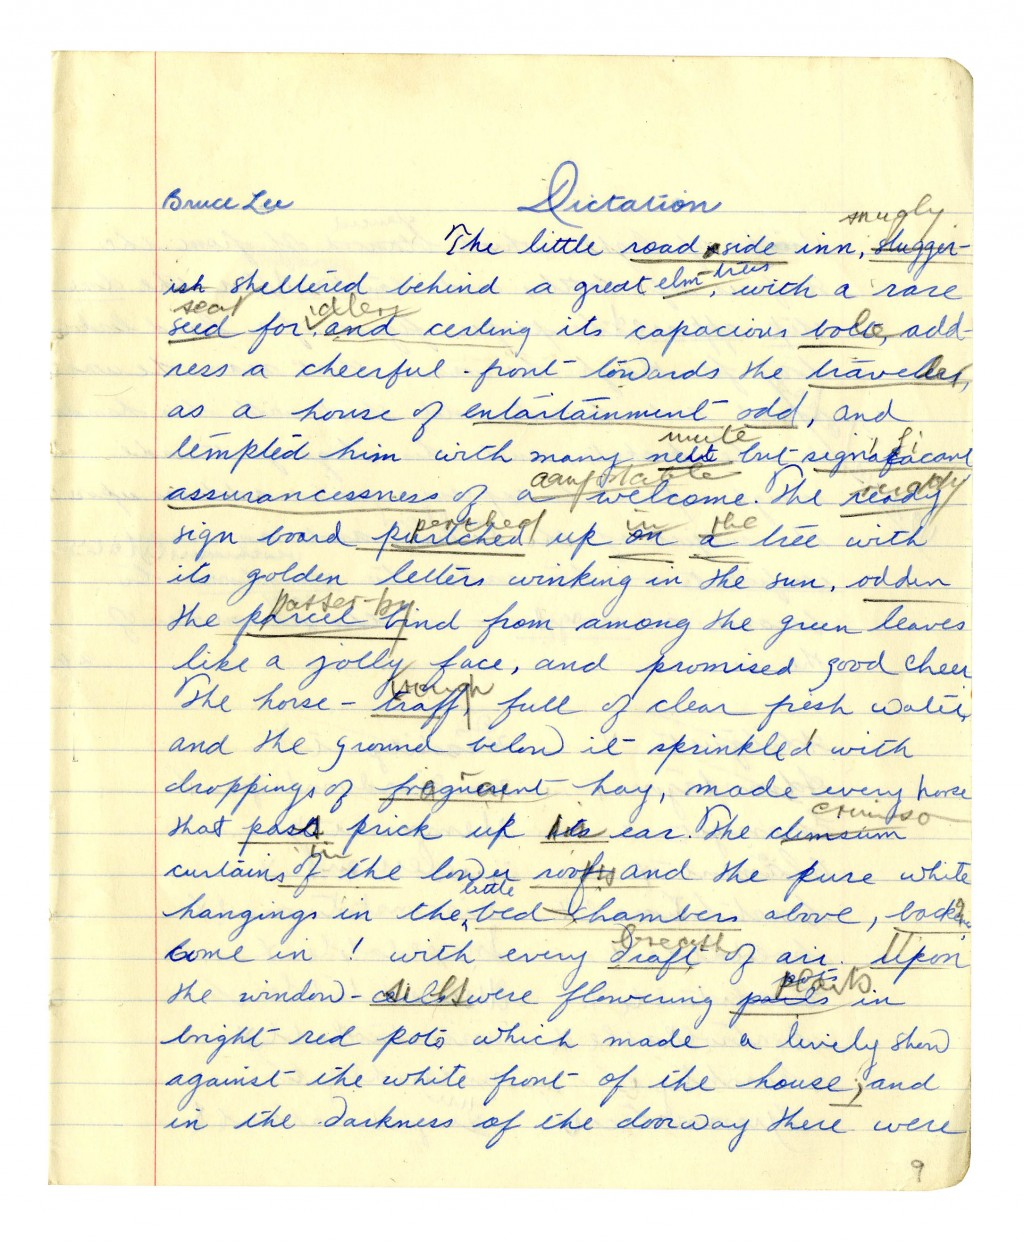 003 Essay On Handwriting Bruce Lee Signed 52850b Lg Fearsome Short Importance Of Good In Hindi Gujarati Large